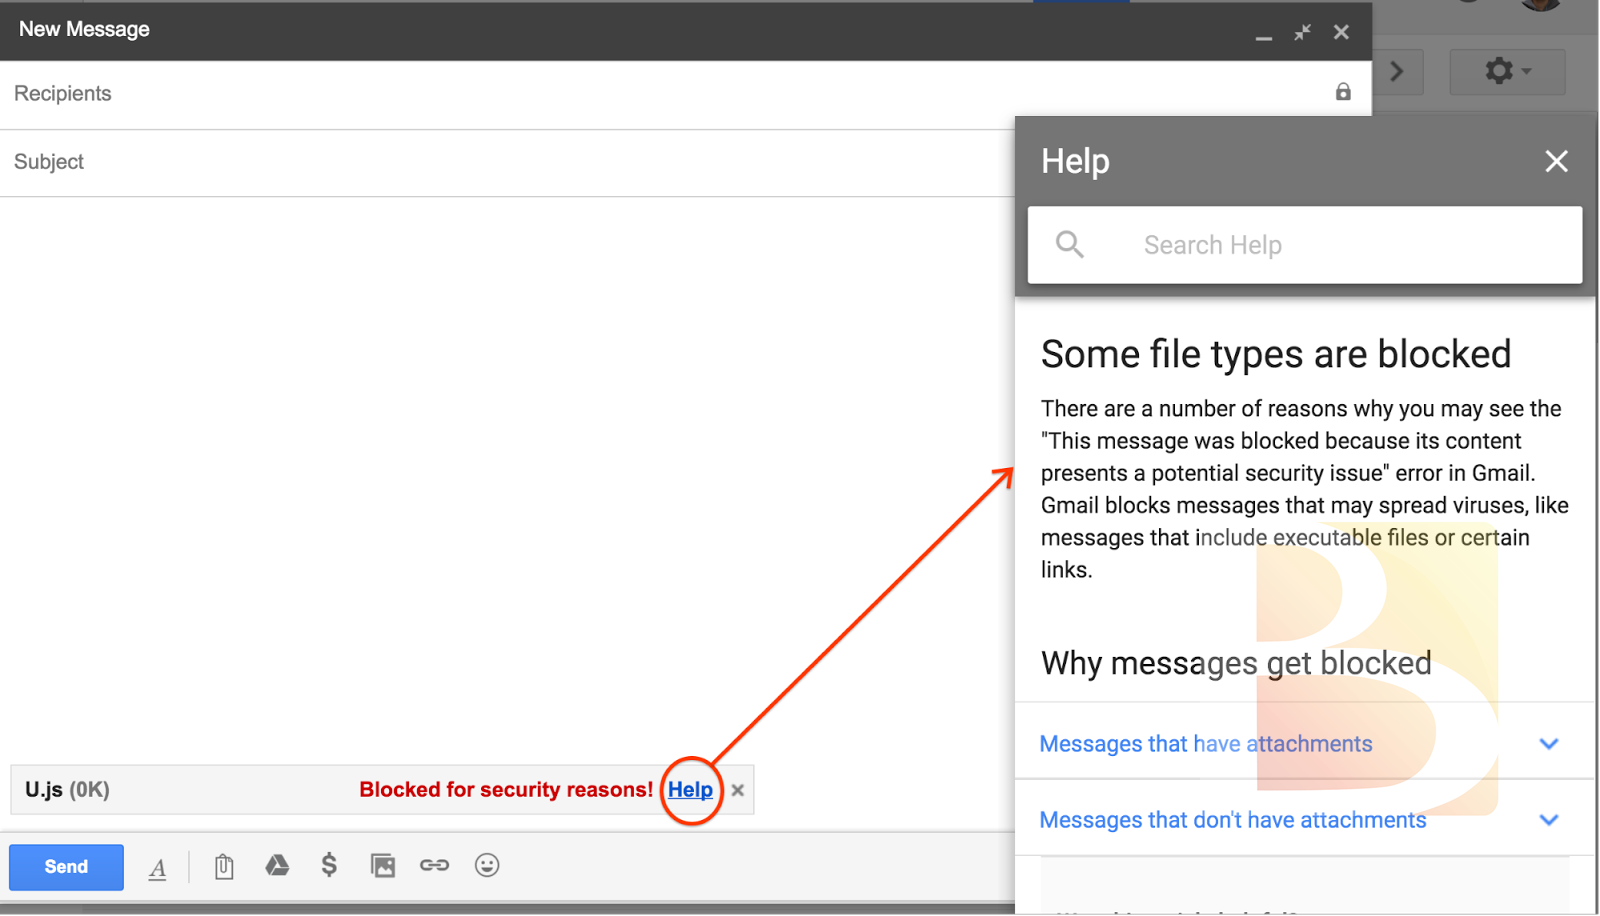 Gmail to block .js files starting February 13, 2017